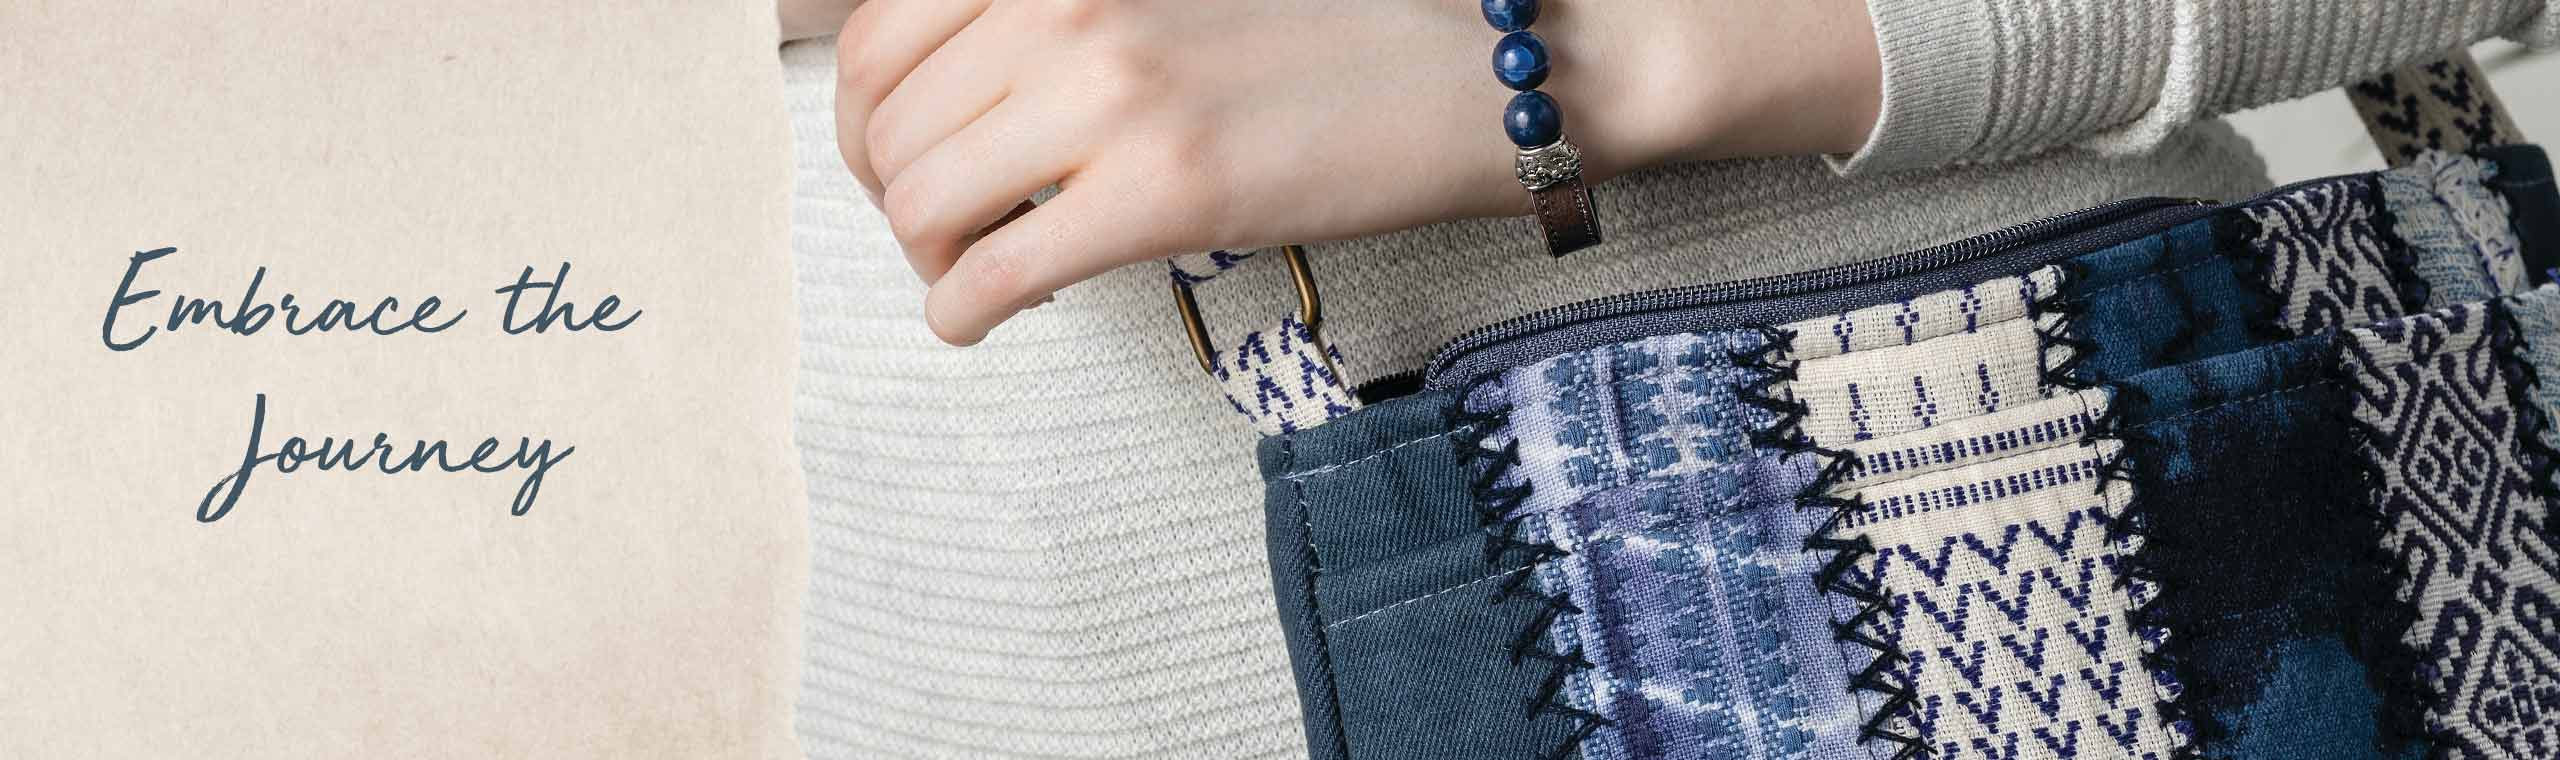 Embrace the Journey and a woment holding a blue textured bag from the journey collection